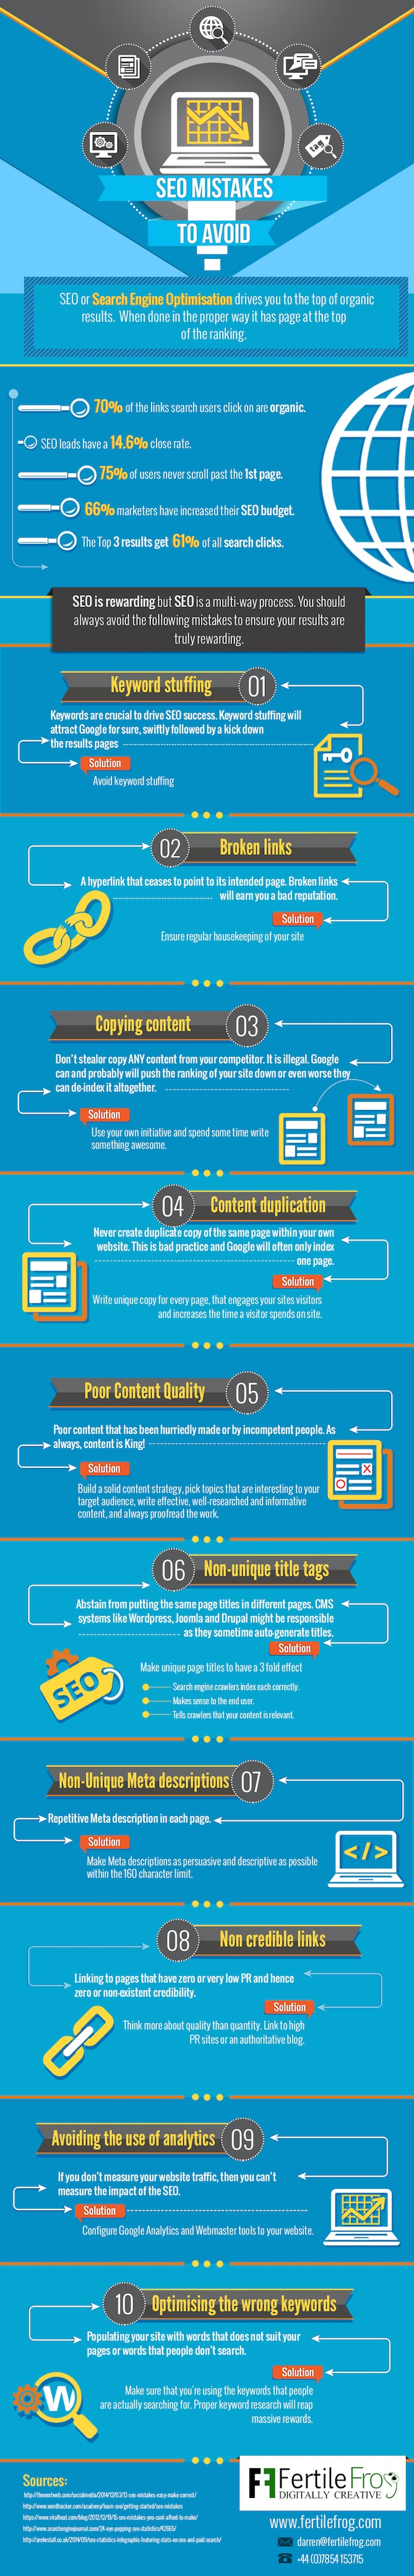 Increase Your Website Traffic By Avoiding These 10 SEO Mistakes